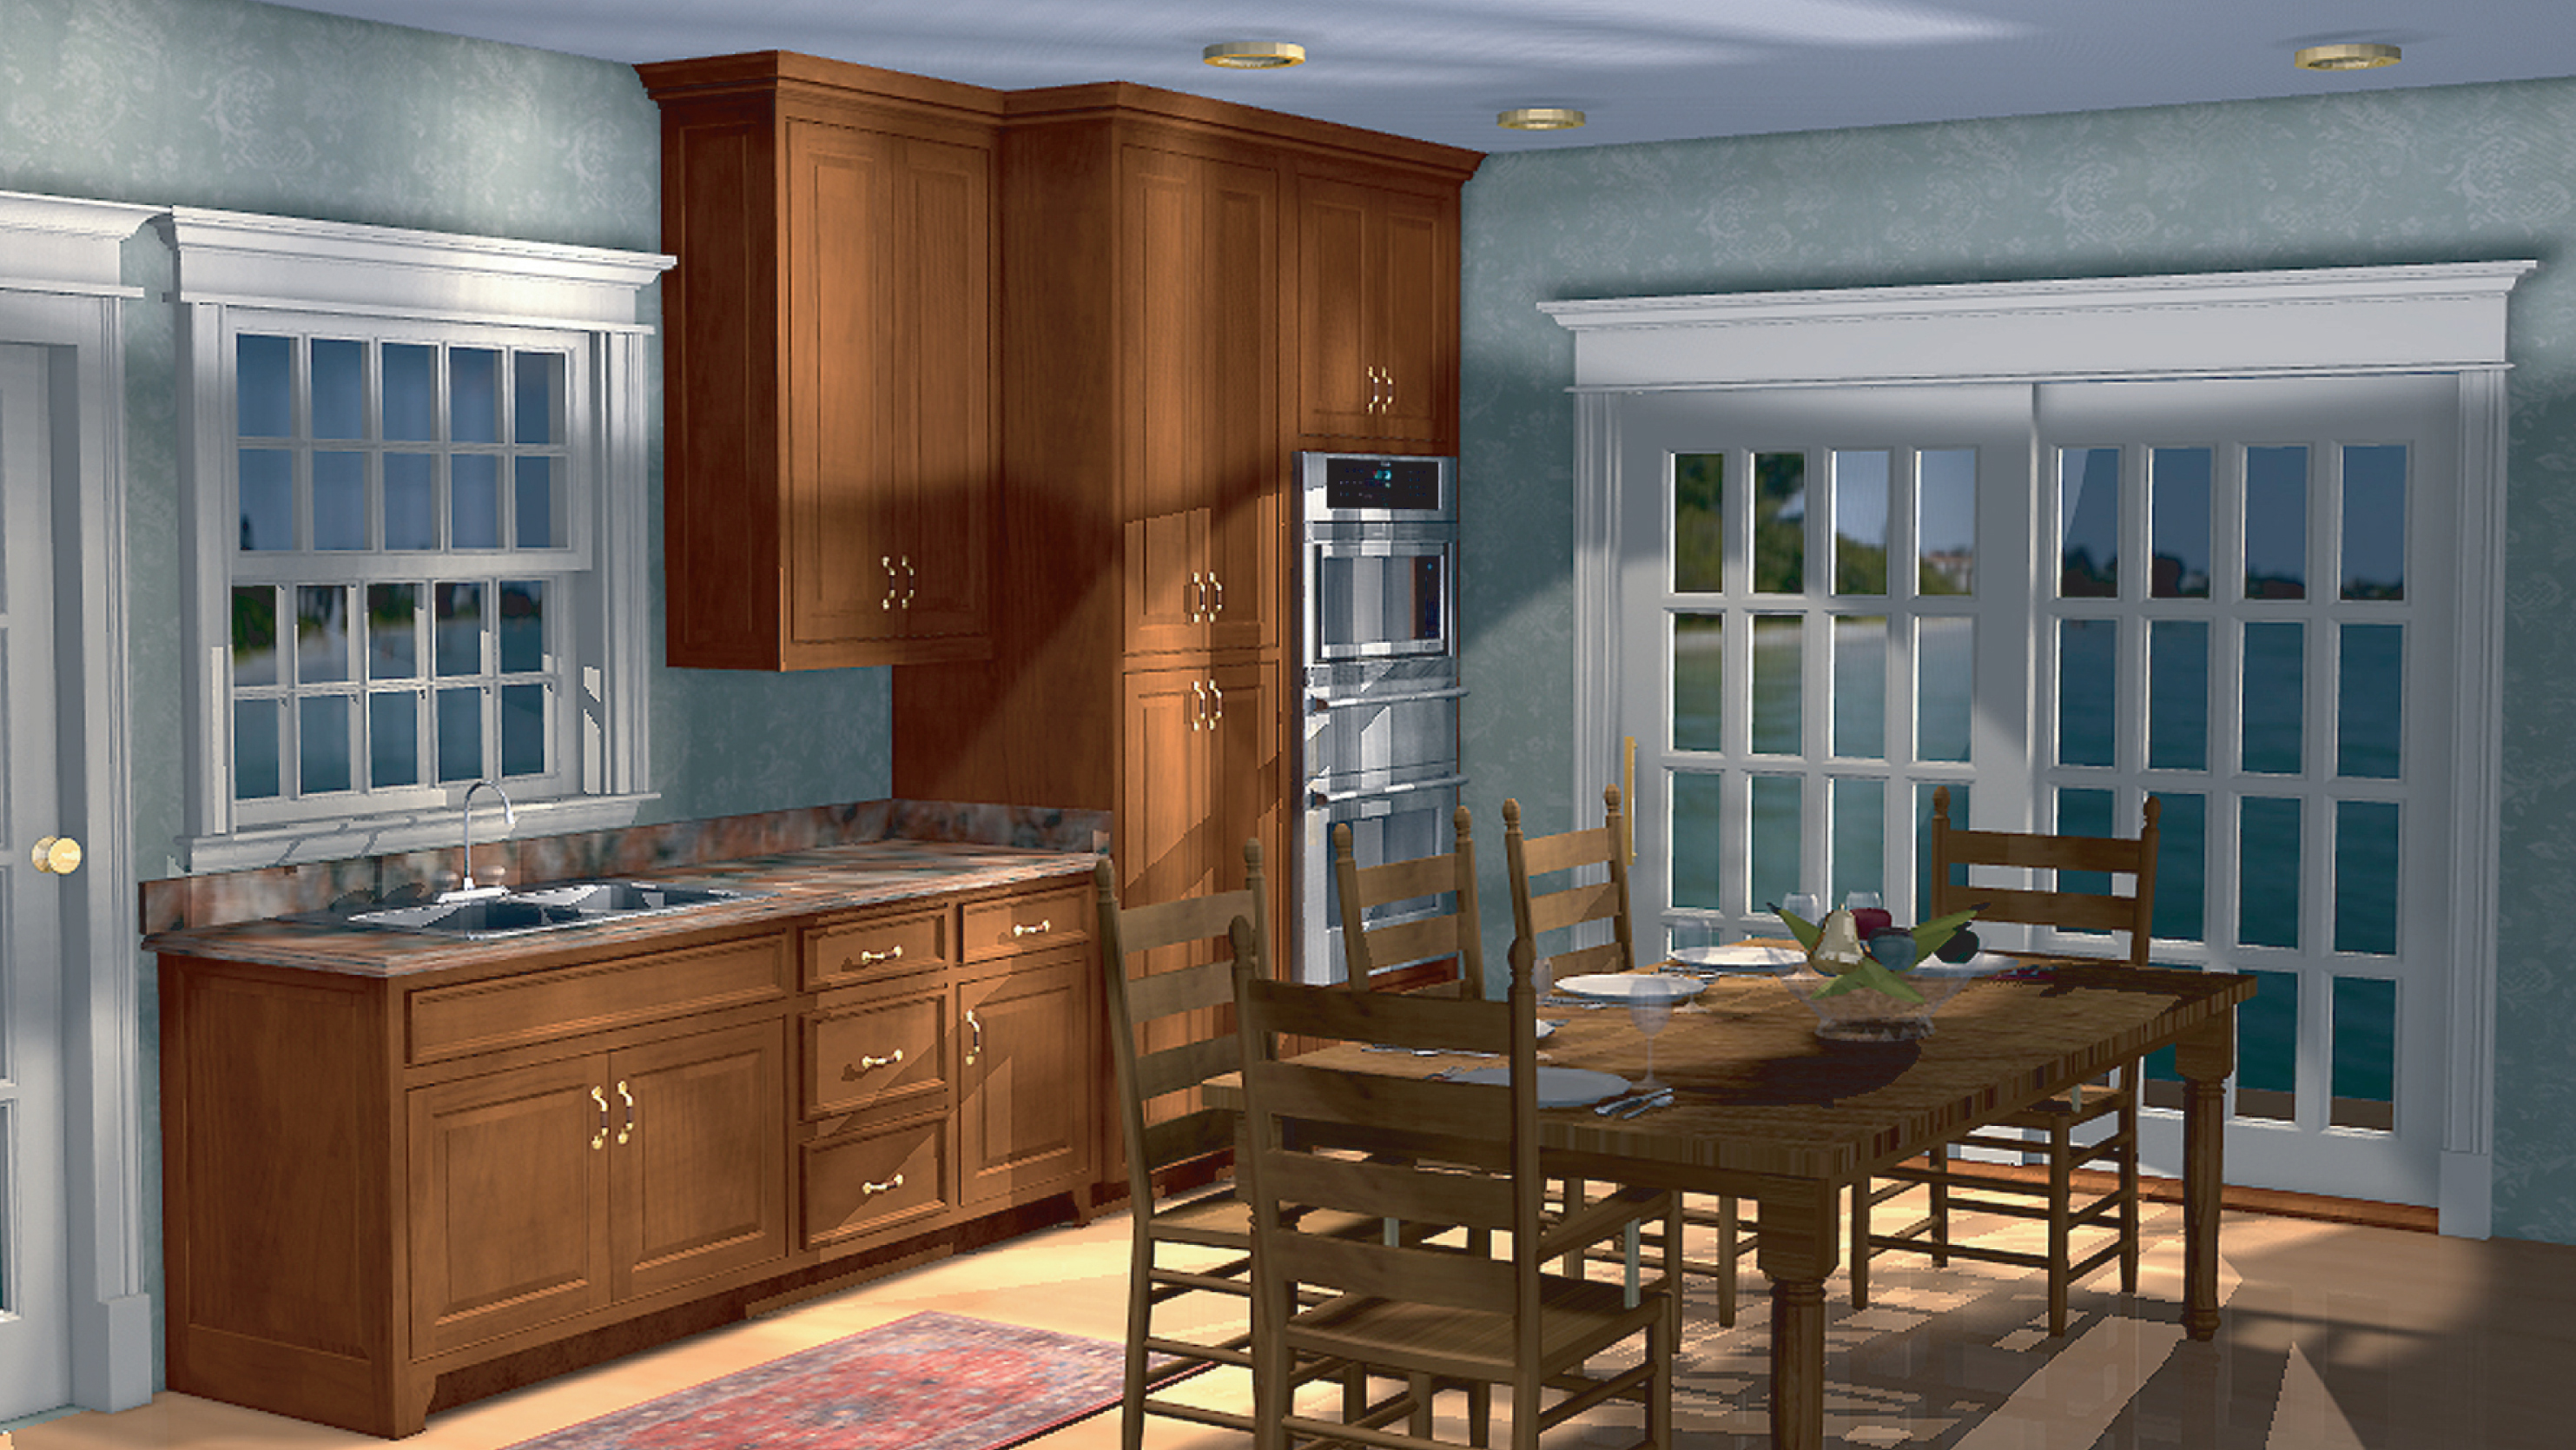 Cabinet Vision rendering